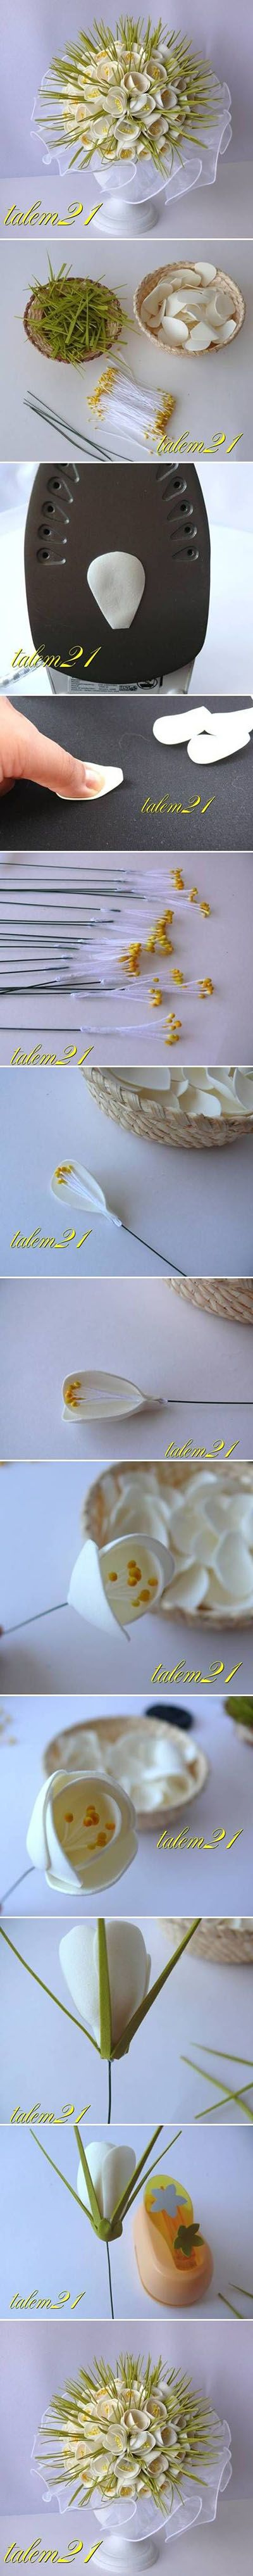 Diy Beautiful Flower | DIY & Crafts Tutorials